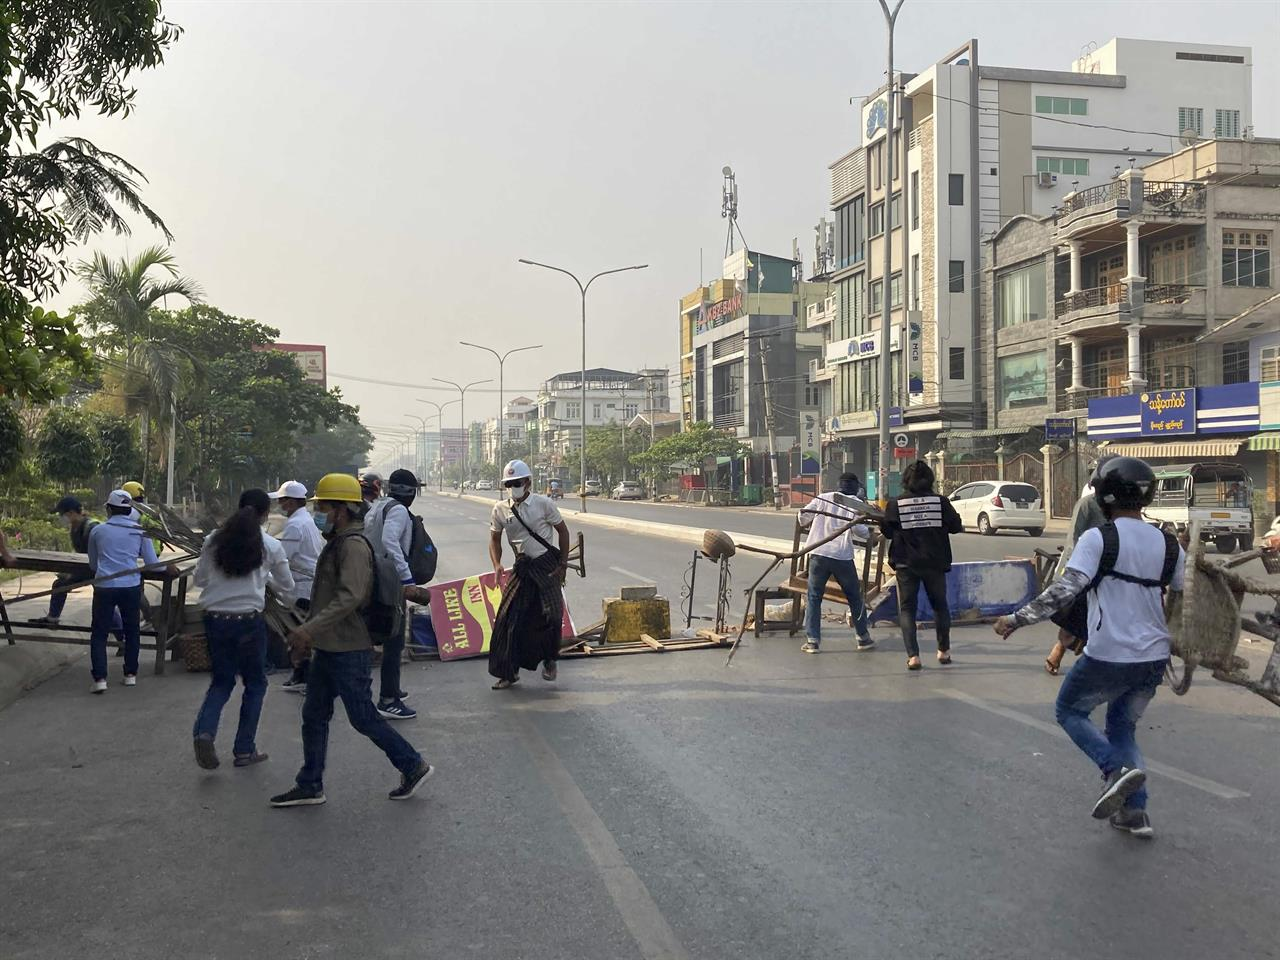 Protesters block a main road during a protest against the military coup in Mandalay, Myanmar, Sunday, Feb. 28, 2021. Police in Myanmar escalated their crackdown on demonstrators against this month's military takeover, deploying early and in force on Saturday as protesters sought to assemble in the country's two biggest cities and elsewhere. (AP Photo)